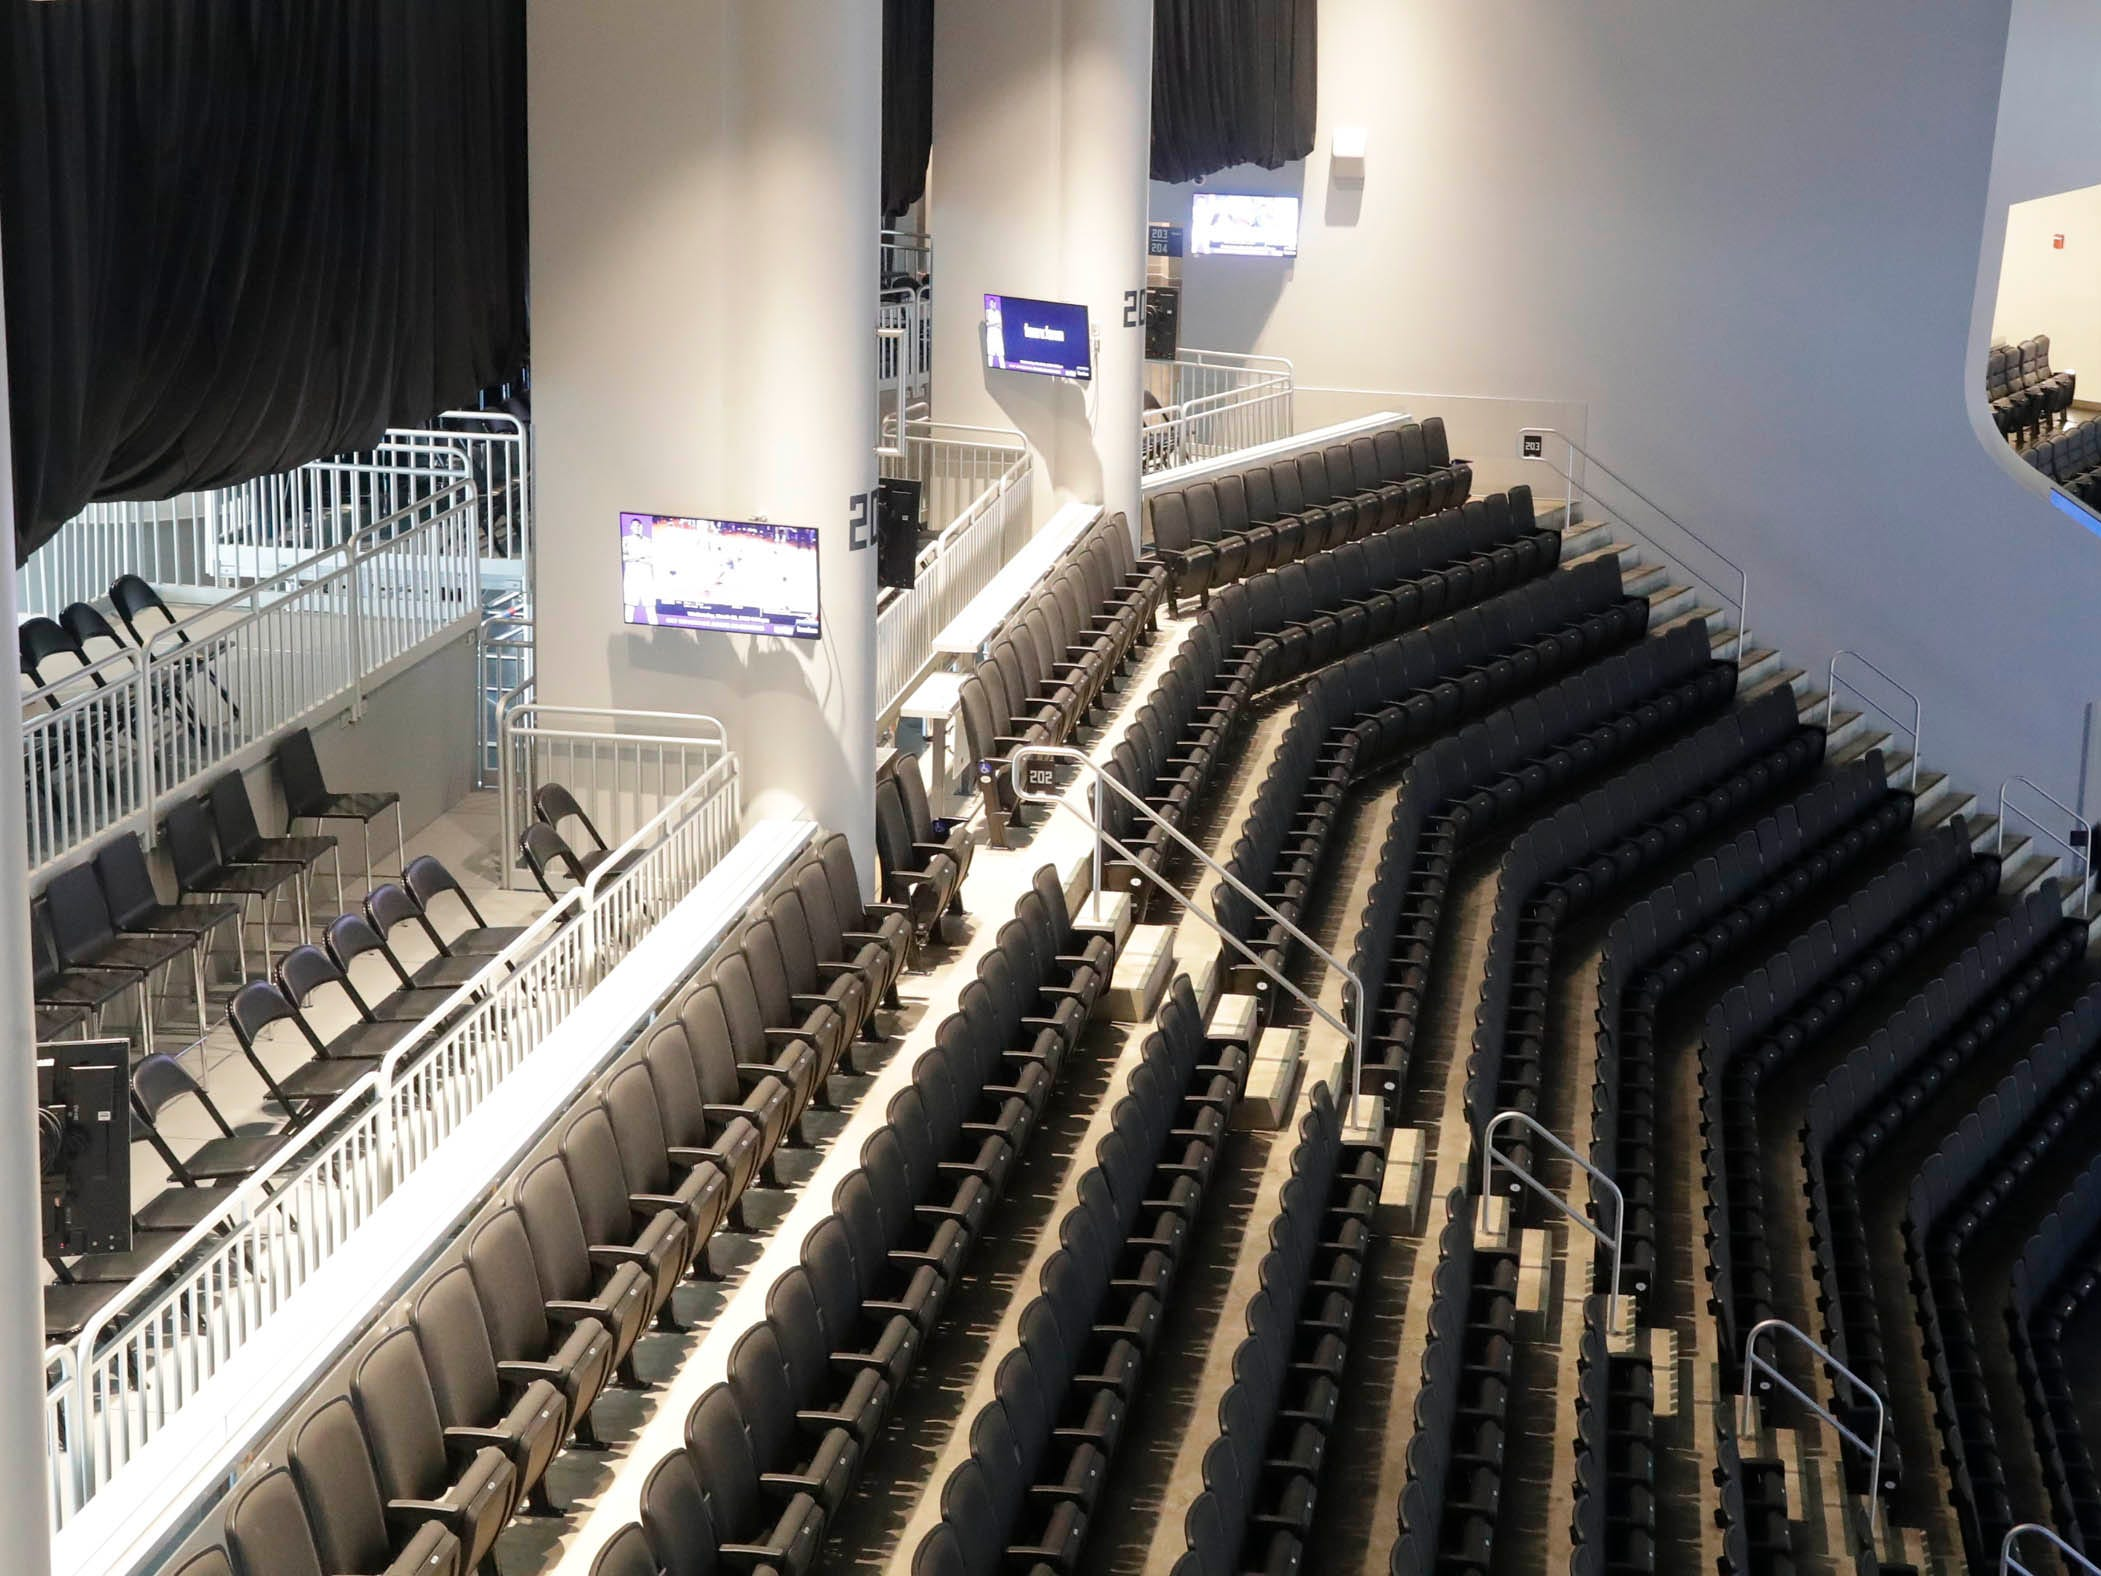 Extra media seating has been purchased for the NBA playoffs and to accommodate media needs during the Democratic National Convention.